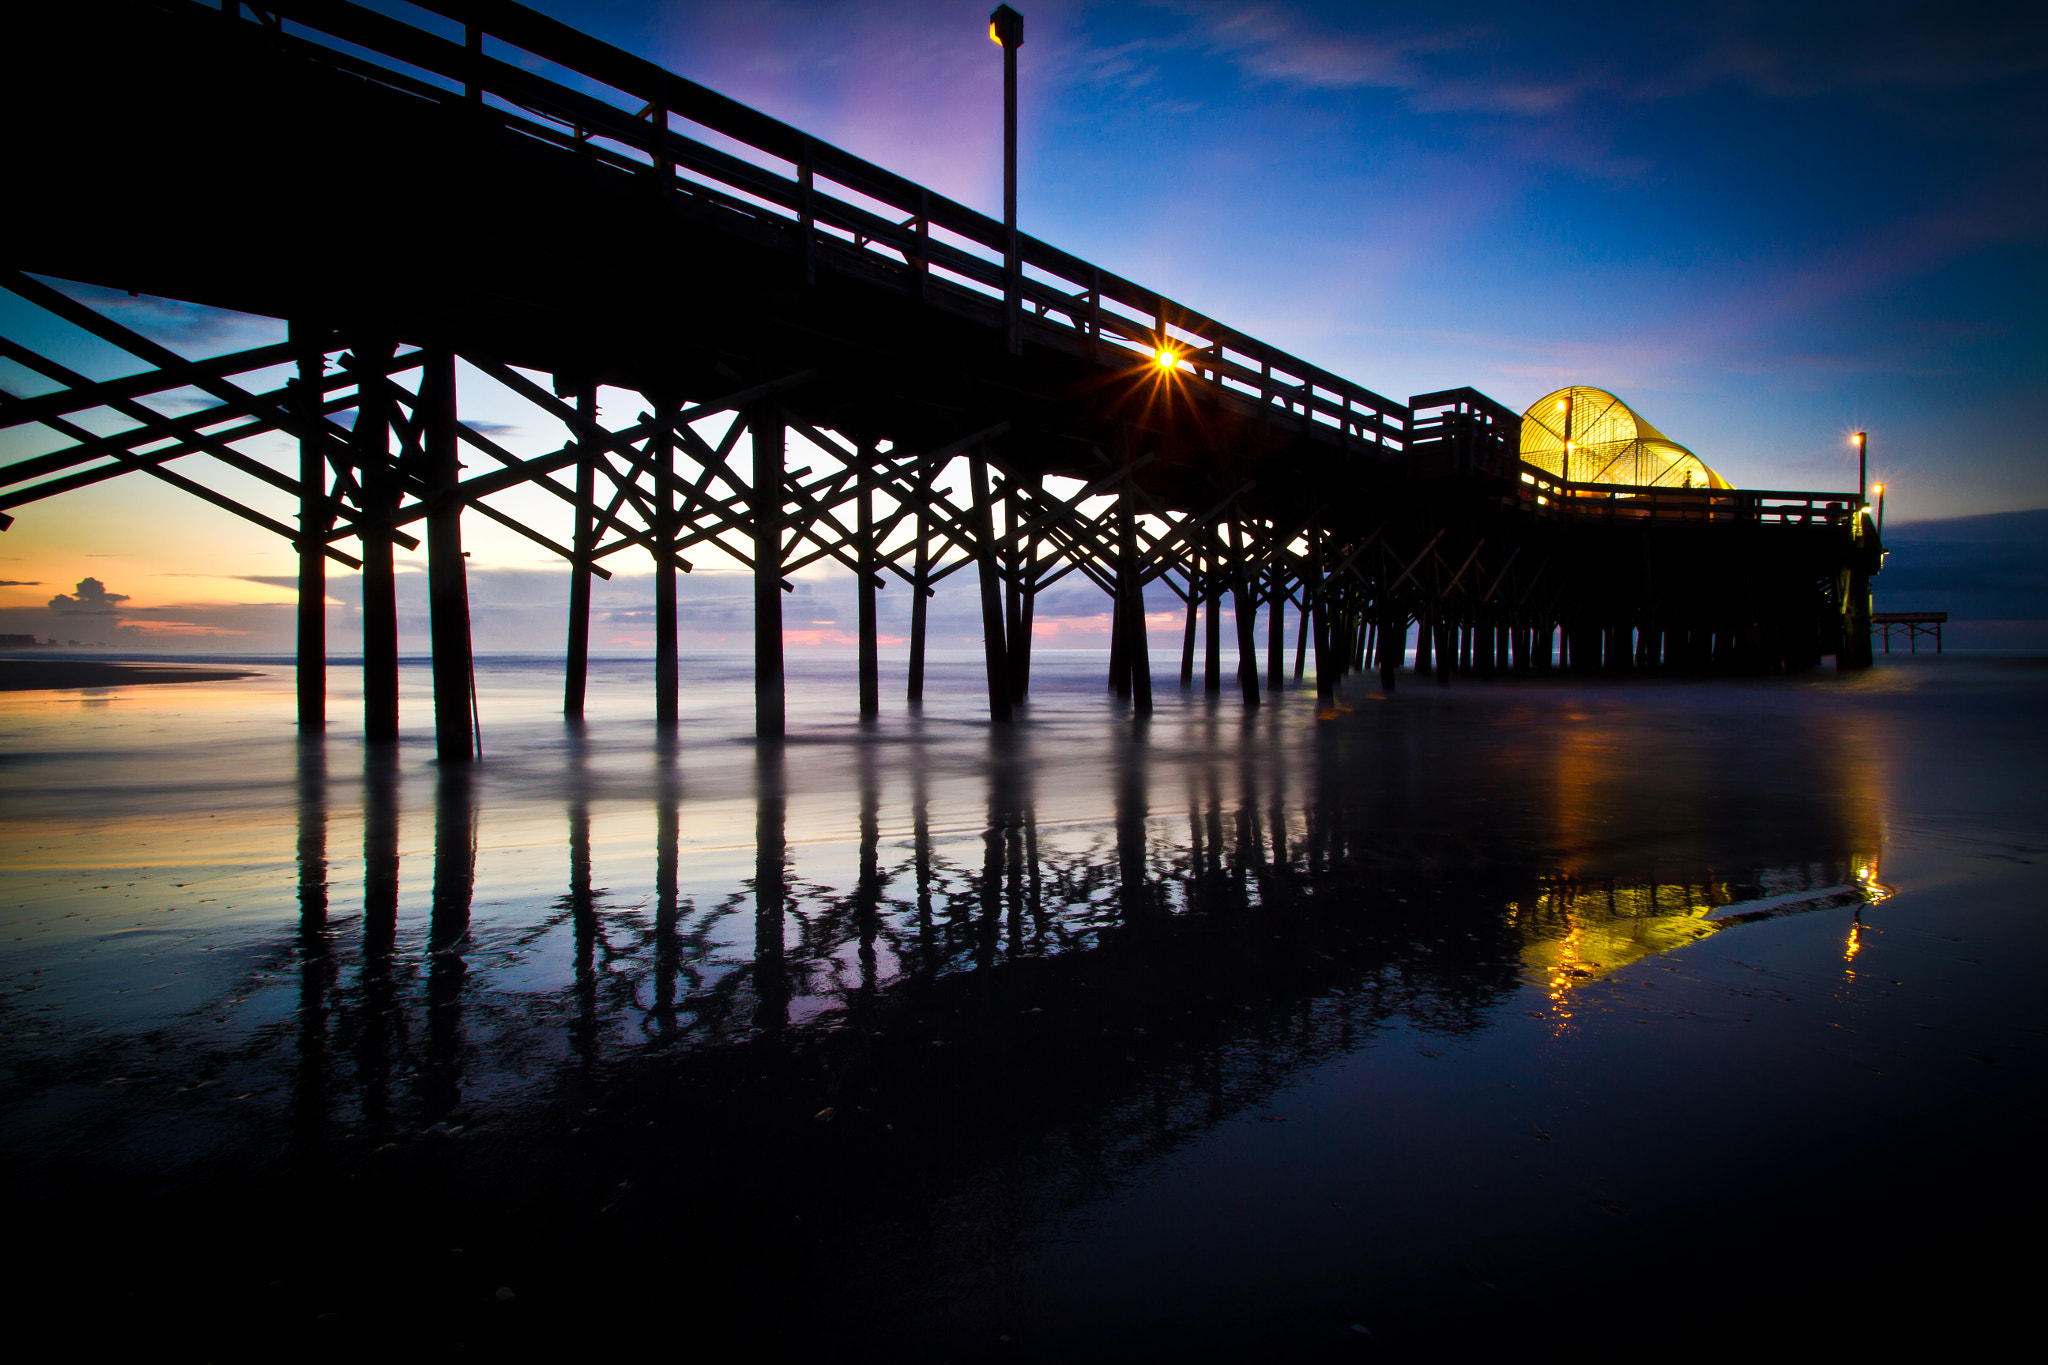 Photograph Apache Pier by Scott Turnmeyer on 500px